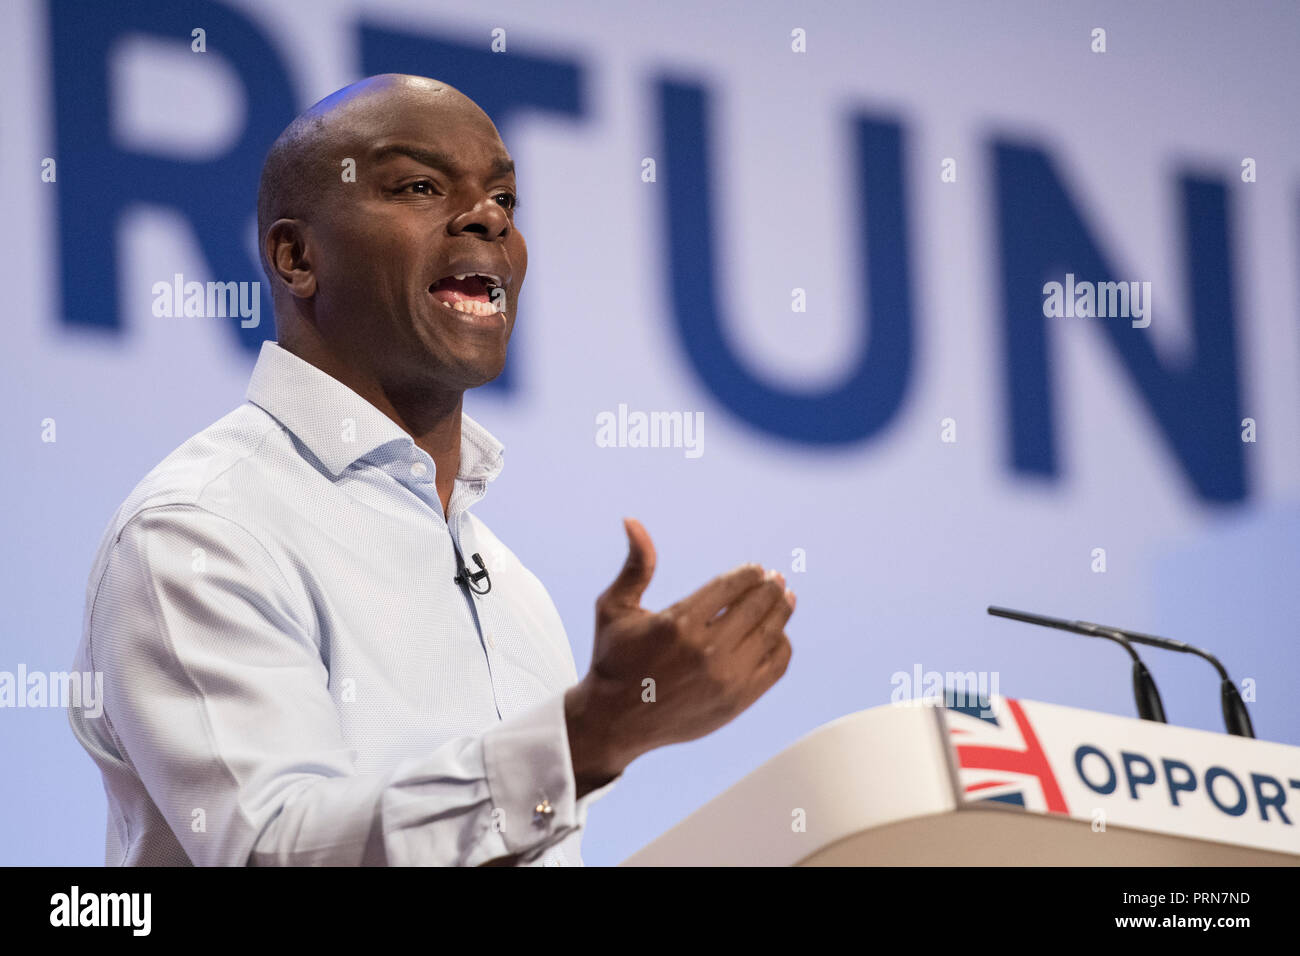 Birmingham, UK. 3 October 2018 - Conservative Party London Mayor candidate Shaun Bailey speech at Conservative Party Conference 2018 Credit: Benjamin Wareing/Alamy Live News - Stock Image